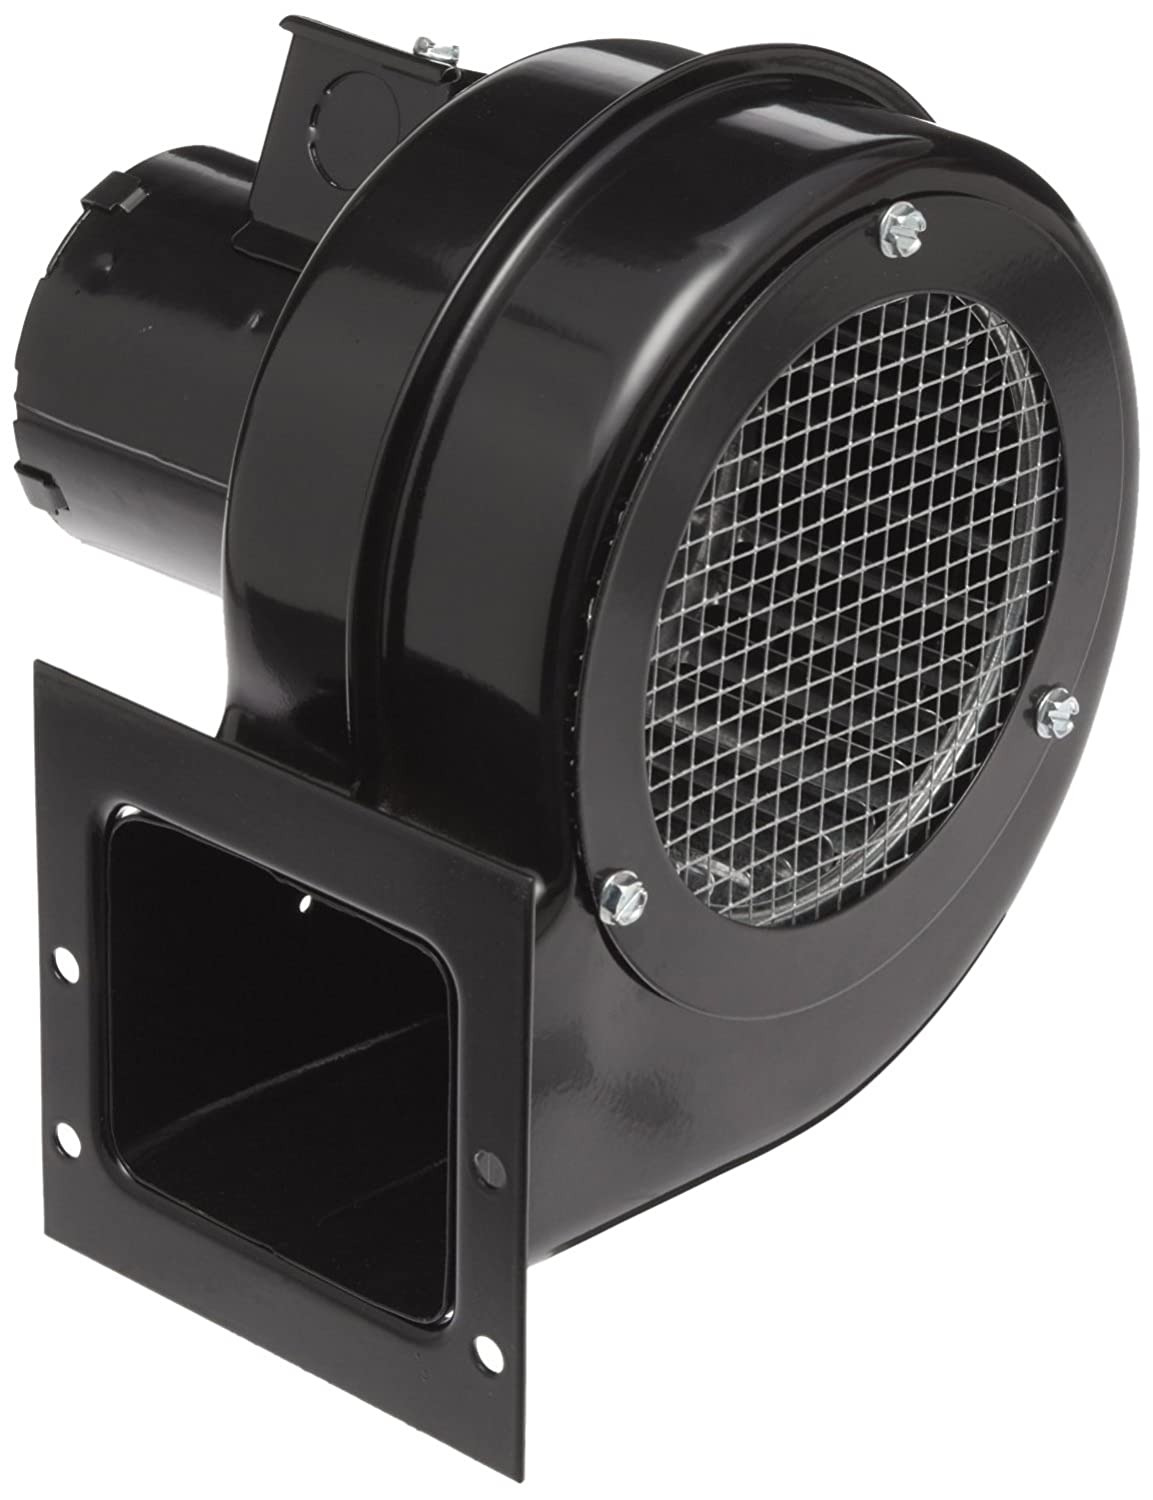 Fasco 50755-D500 Centrifugal Blower with Sleeve Bearing, 1,600 rpm, on